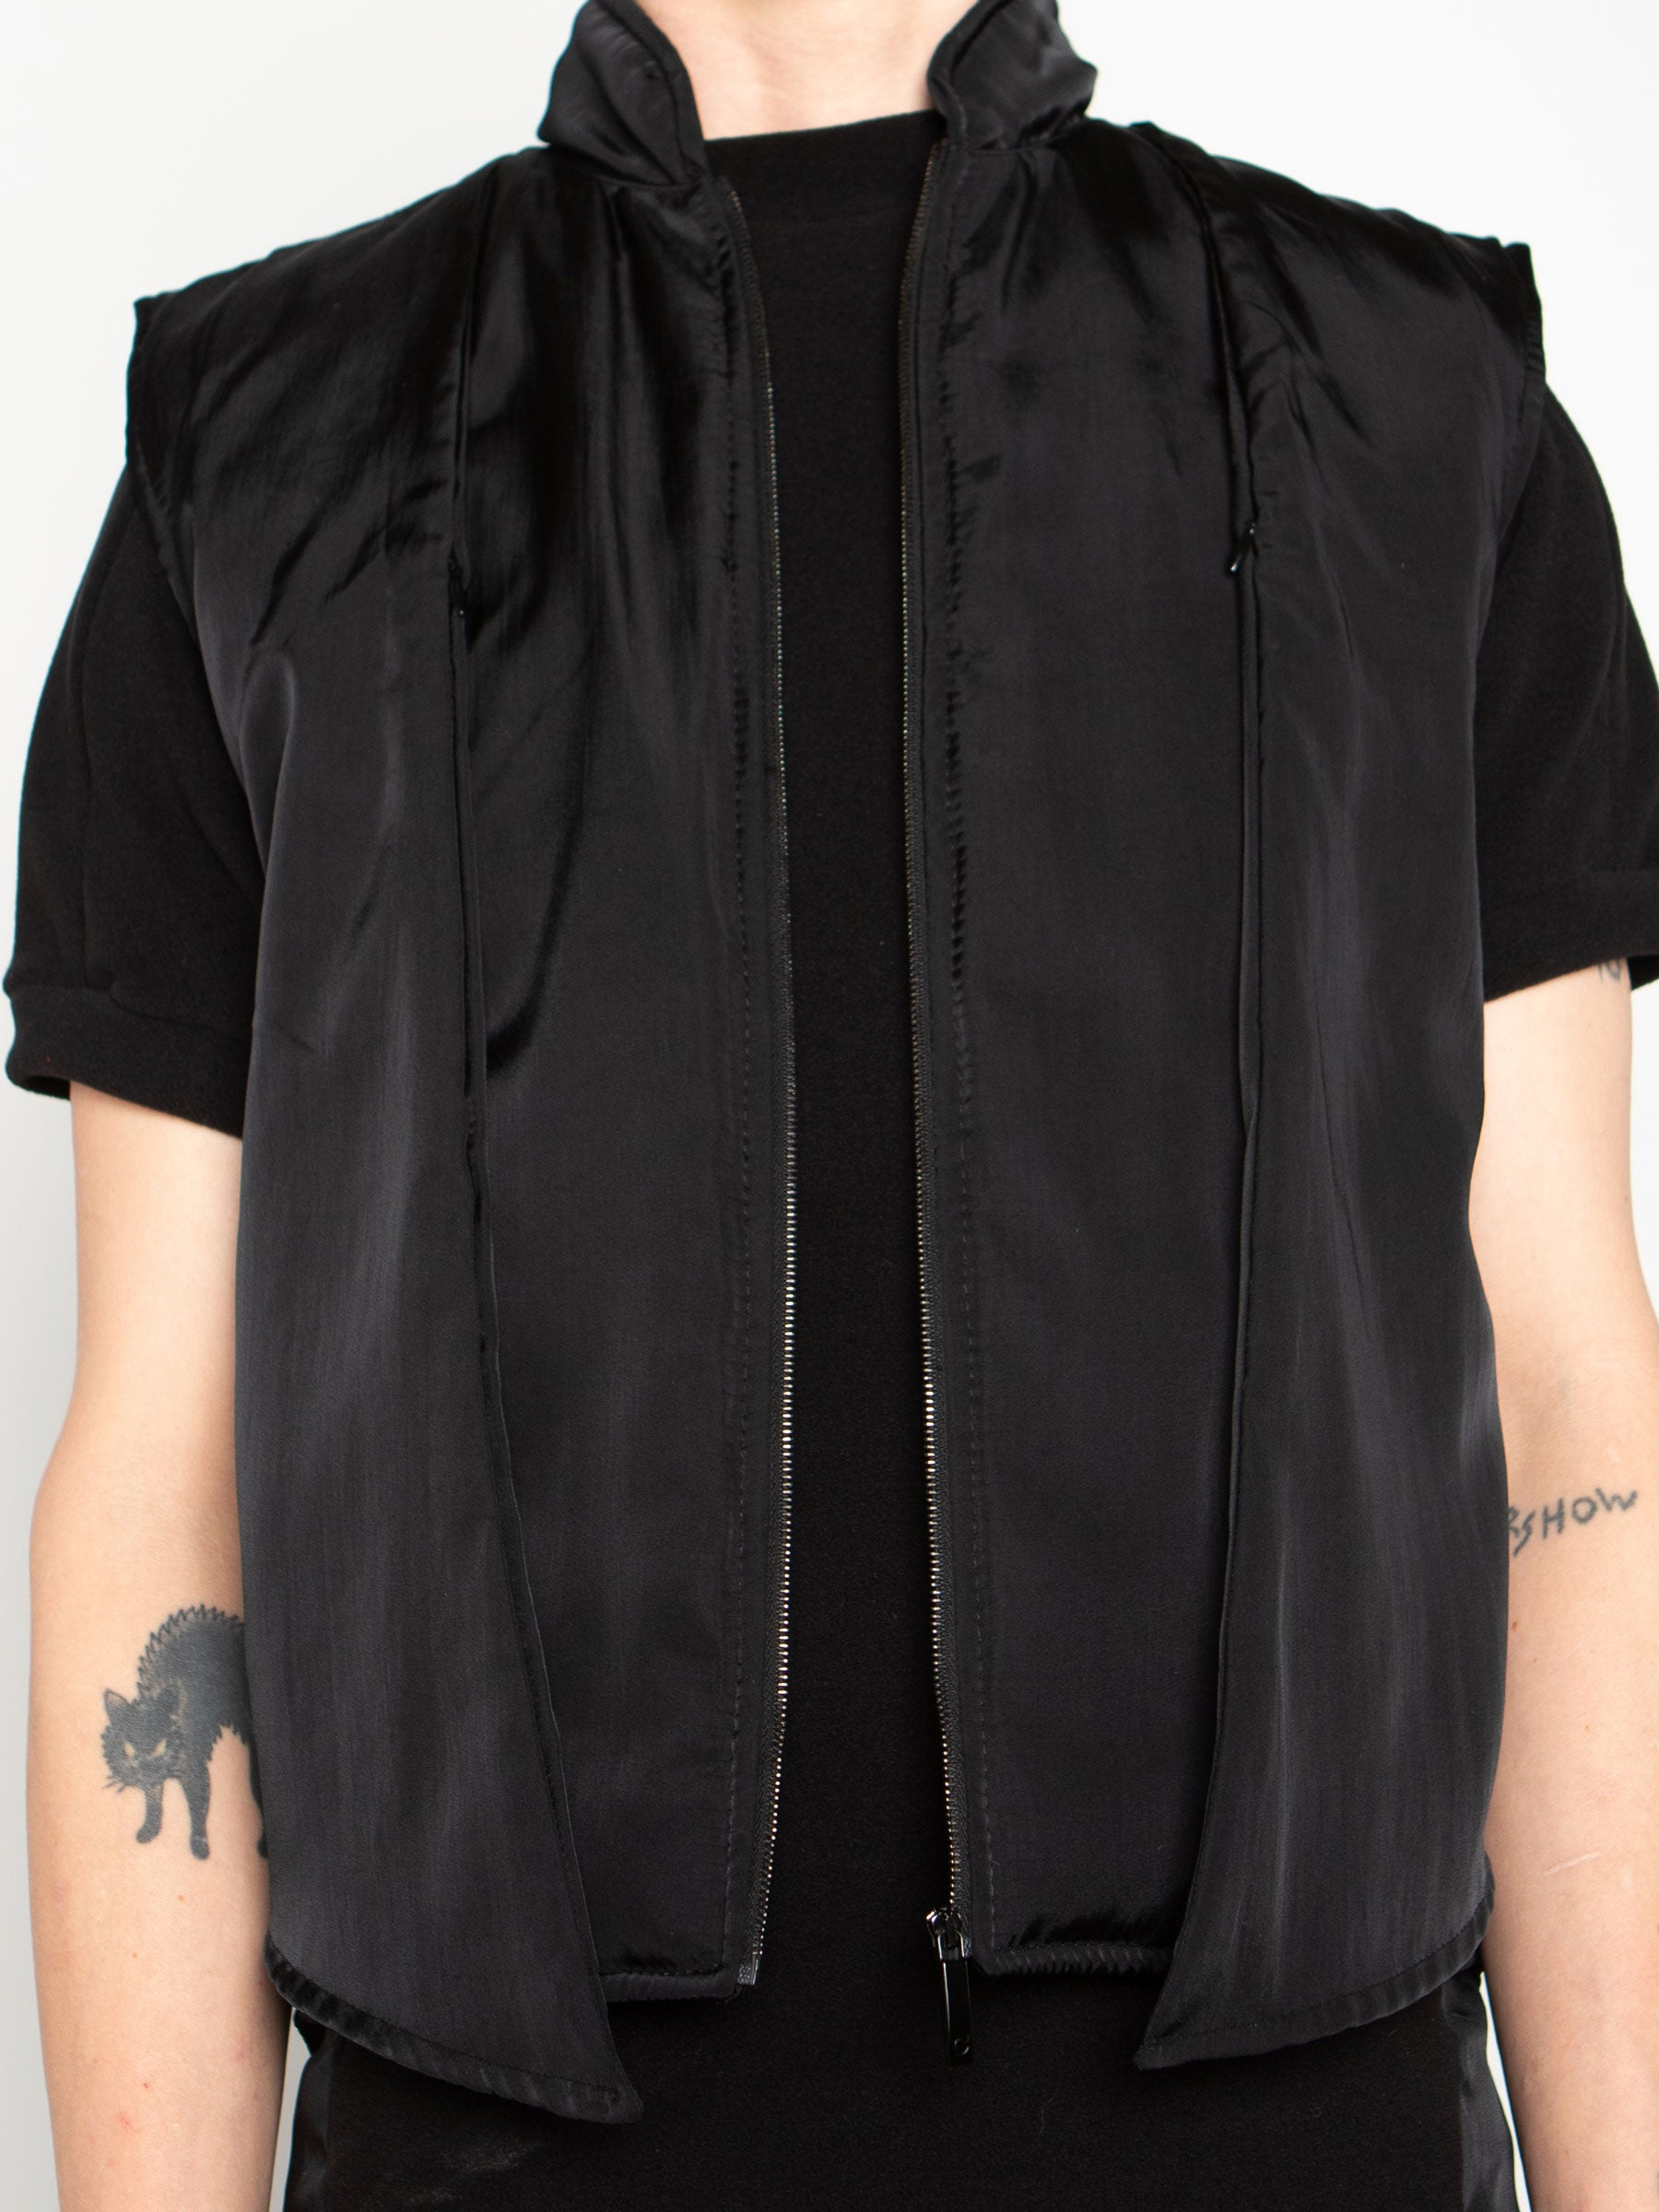 odd92 Shop Cottweiler Spring/Summer 2020 Menswear Black Caddie Puffer Vest - 3